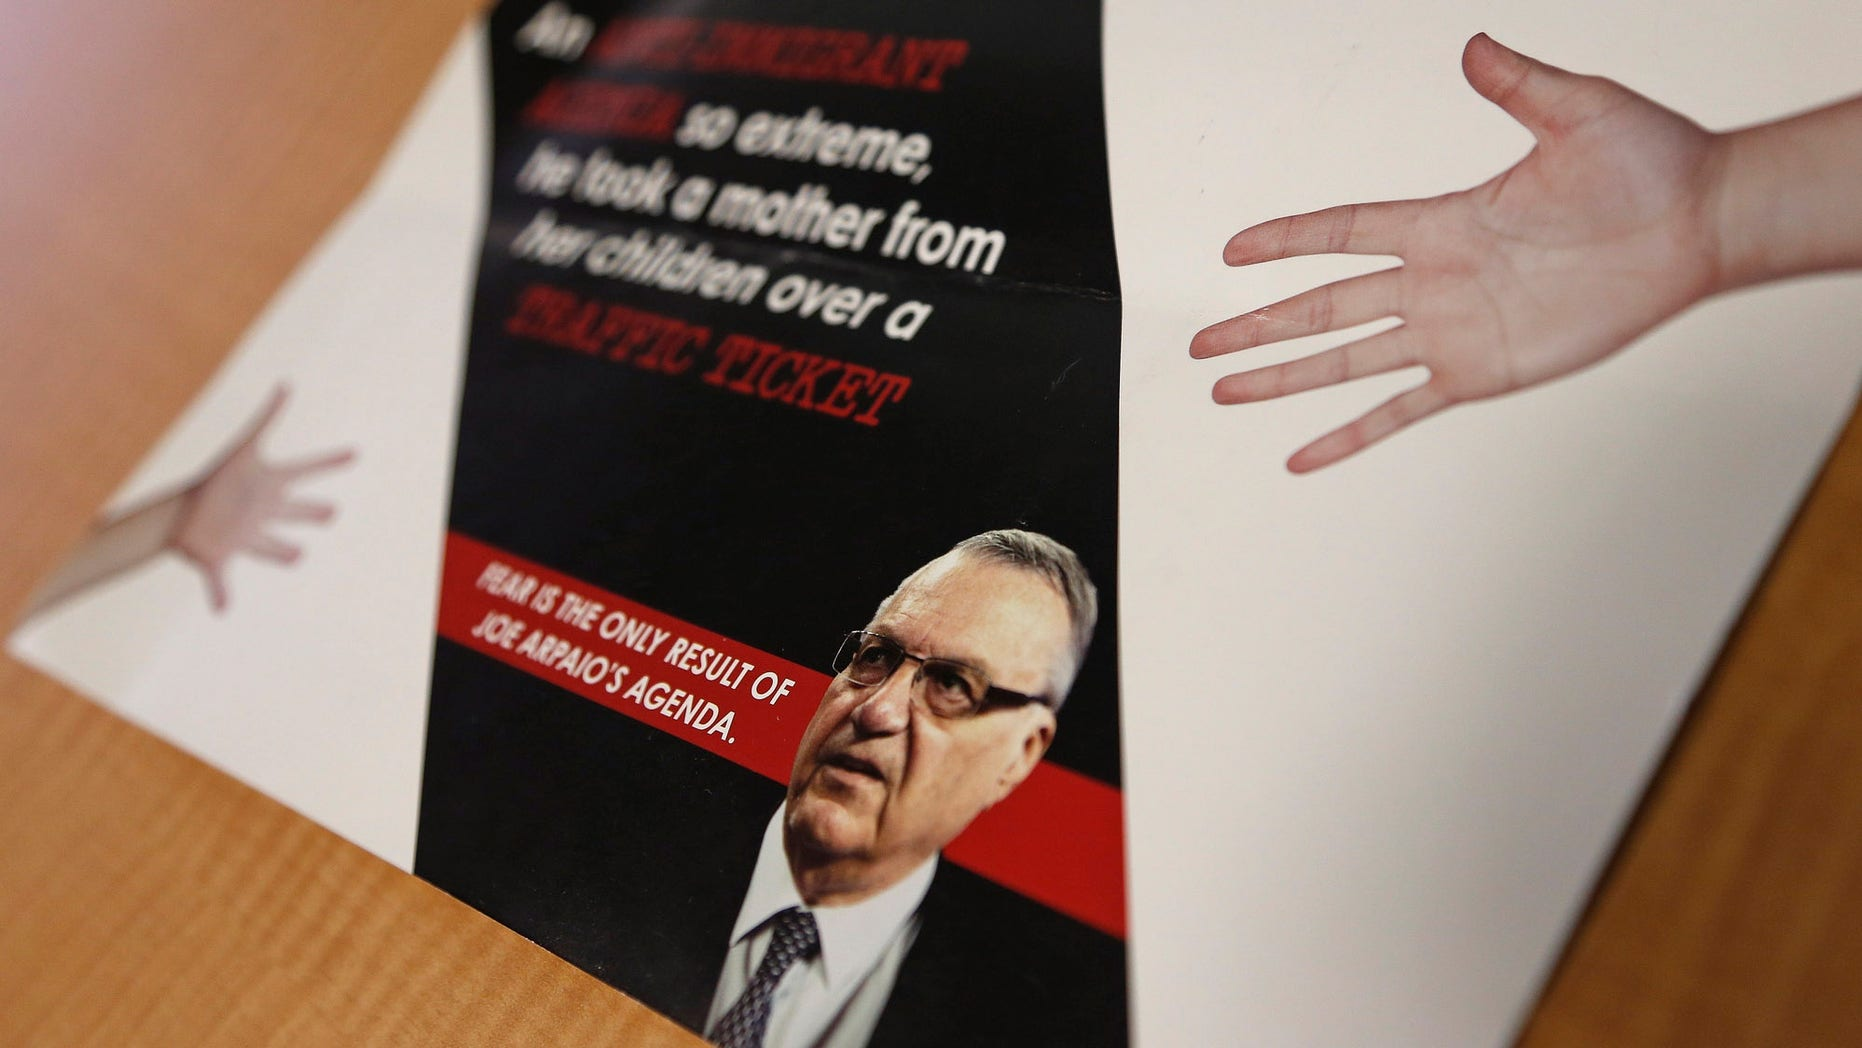 FILE - In this Sept. 13, 2016, file photo, a group backed by the New York hedge fund billionaire George Soros, a longtime bankroller of liberal political causes, is mailing anti-Joe Arpaio fliers to Phoenix-area voters. Paul Penzone, a former Phoenix police sergeant running against Arpaio, is getting a boost from the unlikely Soros source. The sheriff of metro Phoenix has won re-election by crafting an image as a law enforcer who targeted parents who skip out on child support, abusers of animals and immigrants who are in the country illegally. Now, Sheriff Joe Arpaio is the one being targeted in a criminal case after he was charged two weeks before Election Day with contempt-of-court for defying a judge's order in a racial profiling case. (AP Photo/Ross D. Franklin, File)